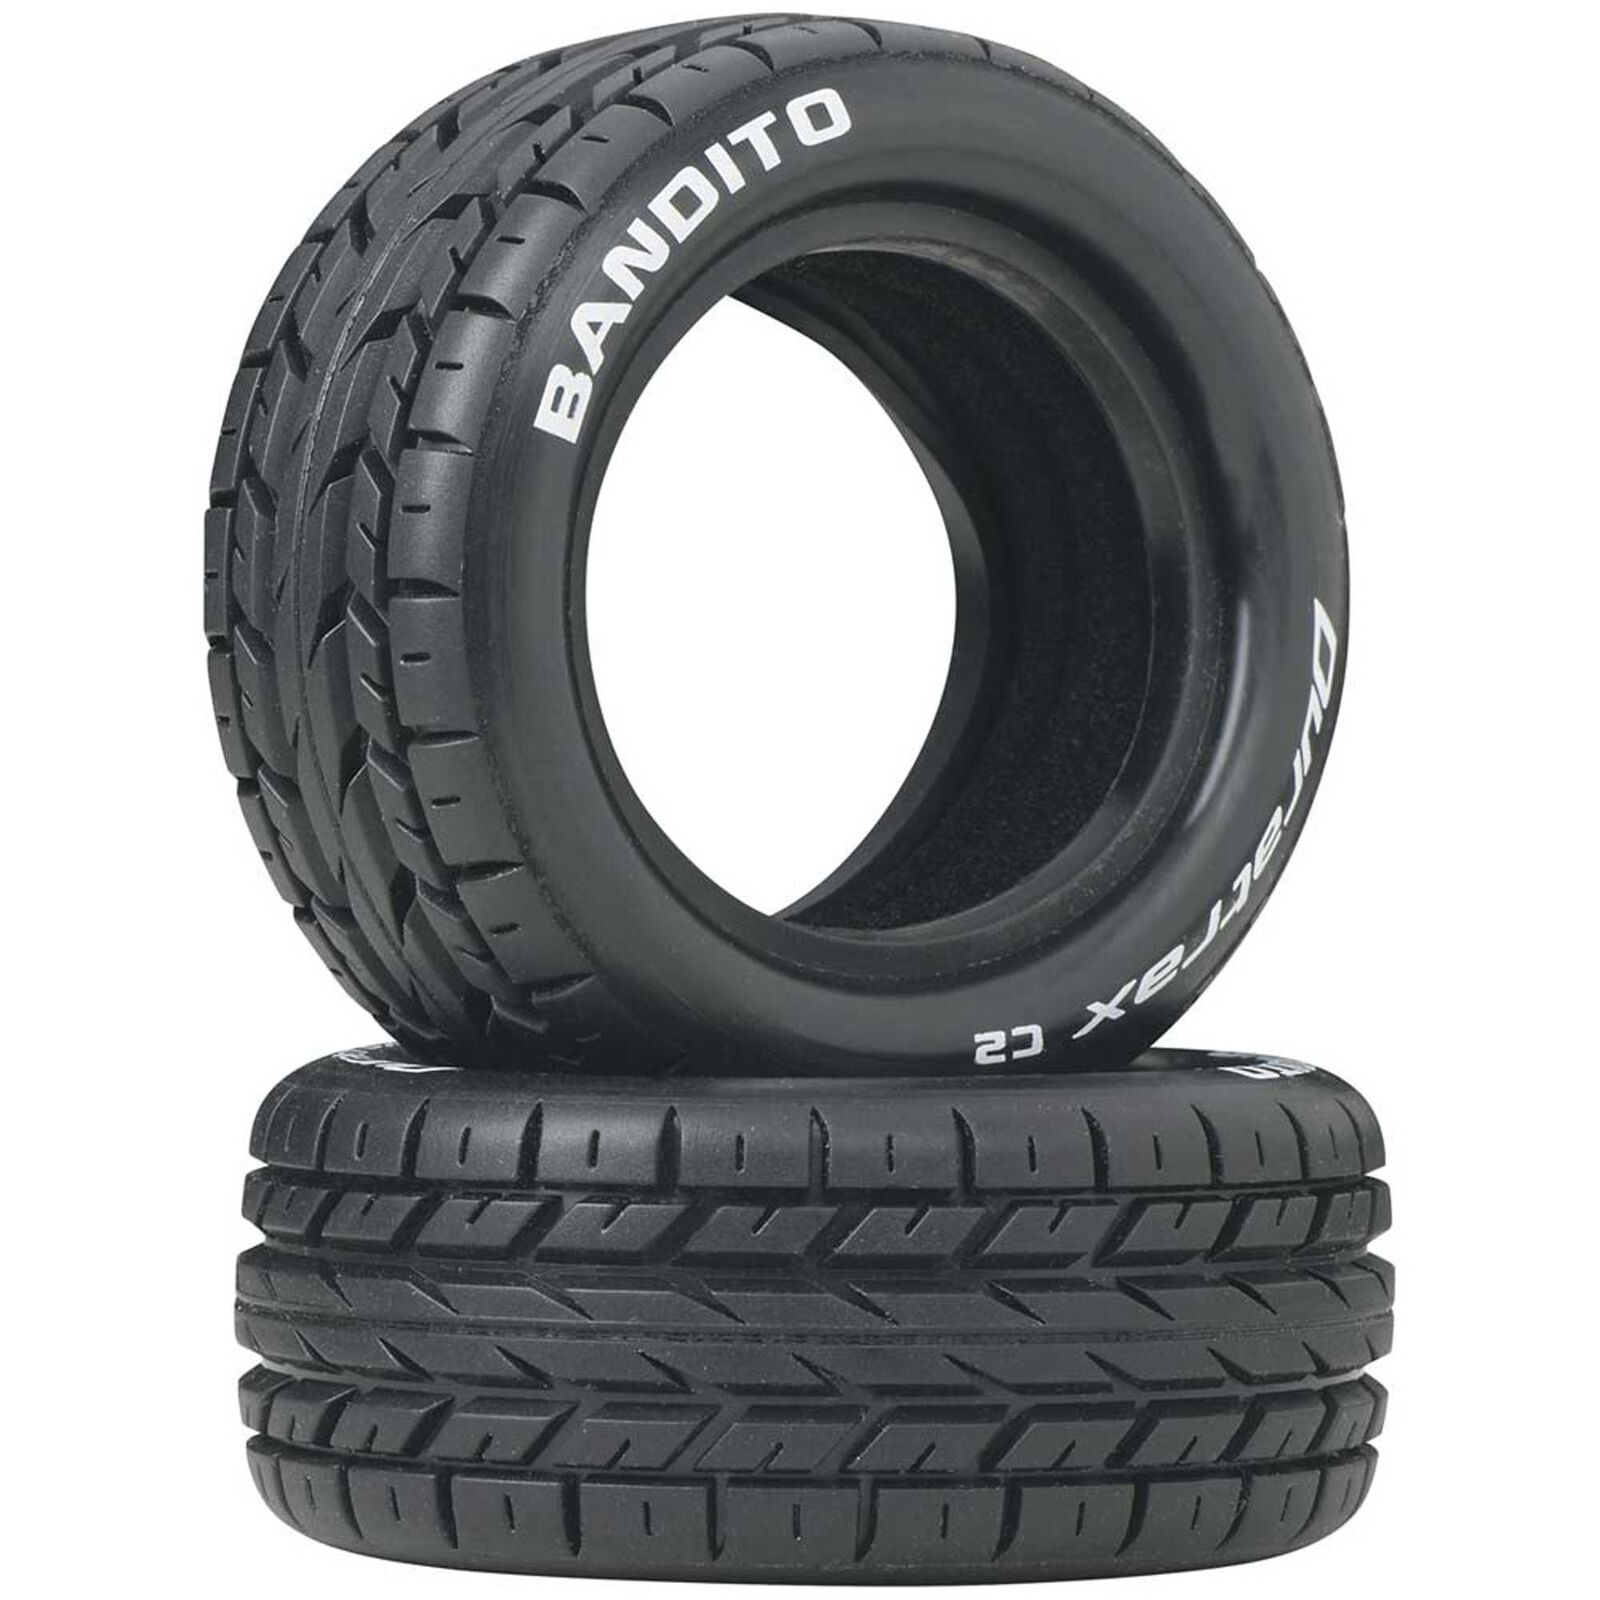 Bandito 1/10 Buggy Tires Front 4WD C2 (2)